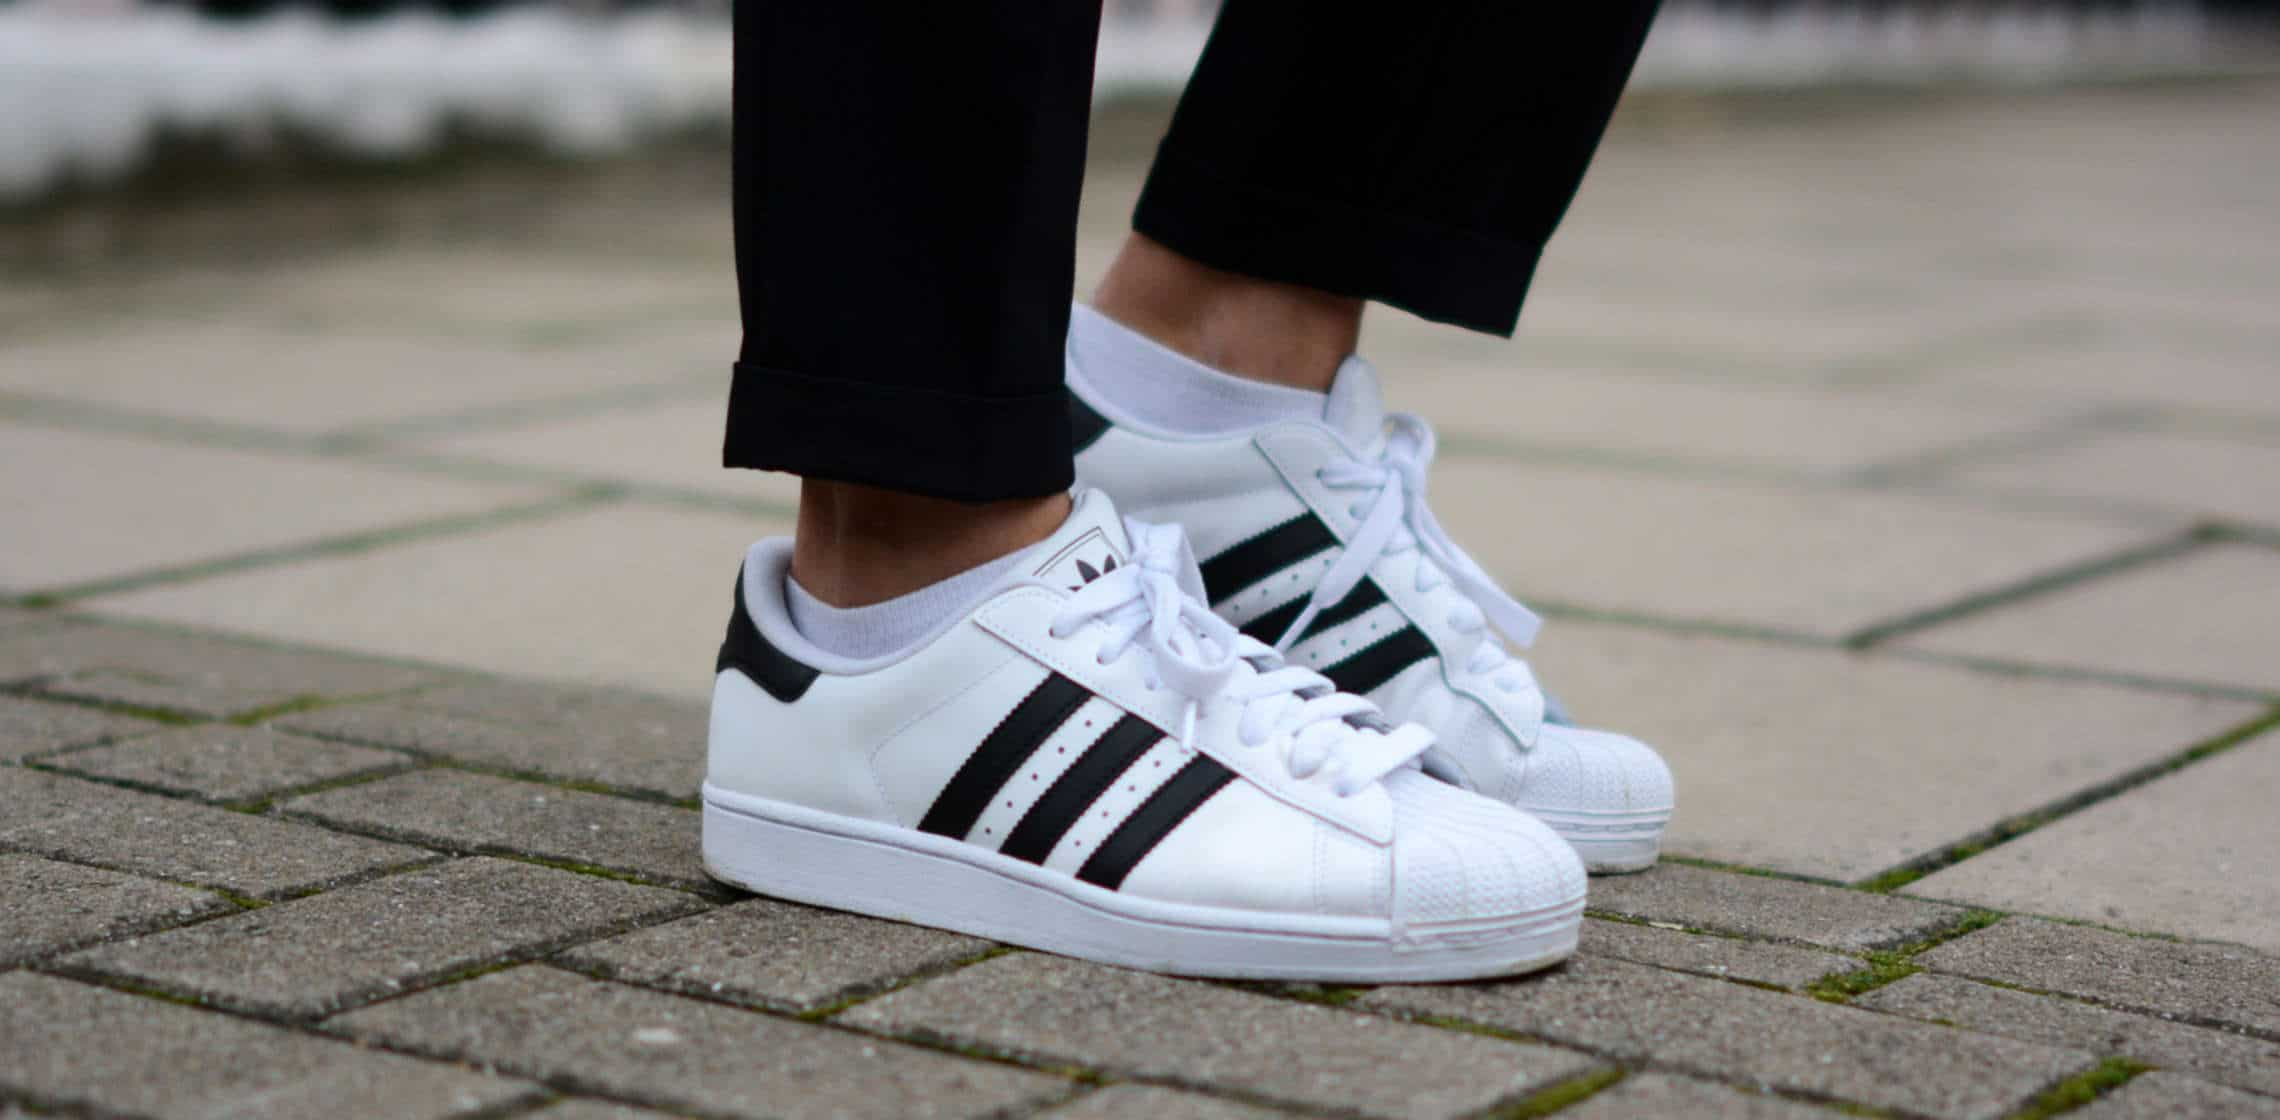 a6e90be475565 OJO  zapatillas Adidas Superstar baratas (y originales) en AliExpress - 2019